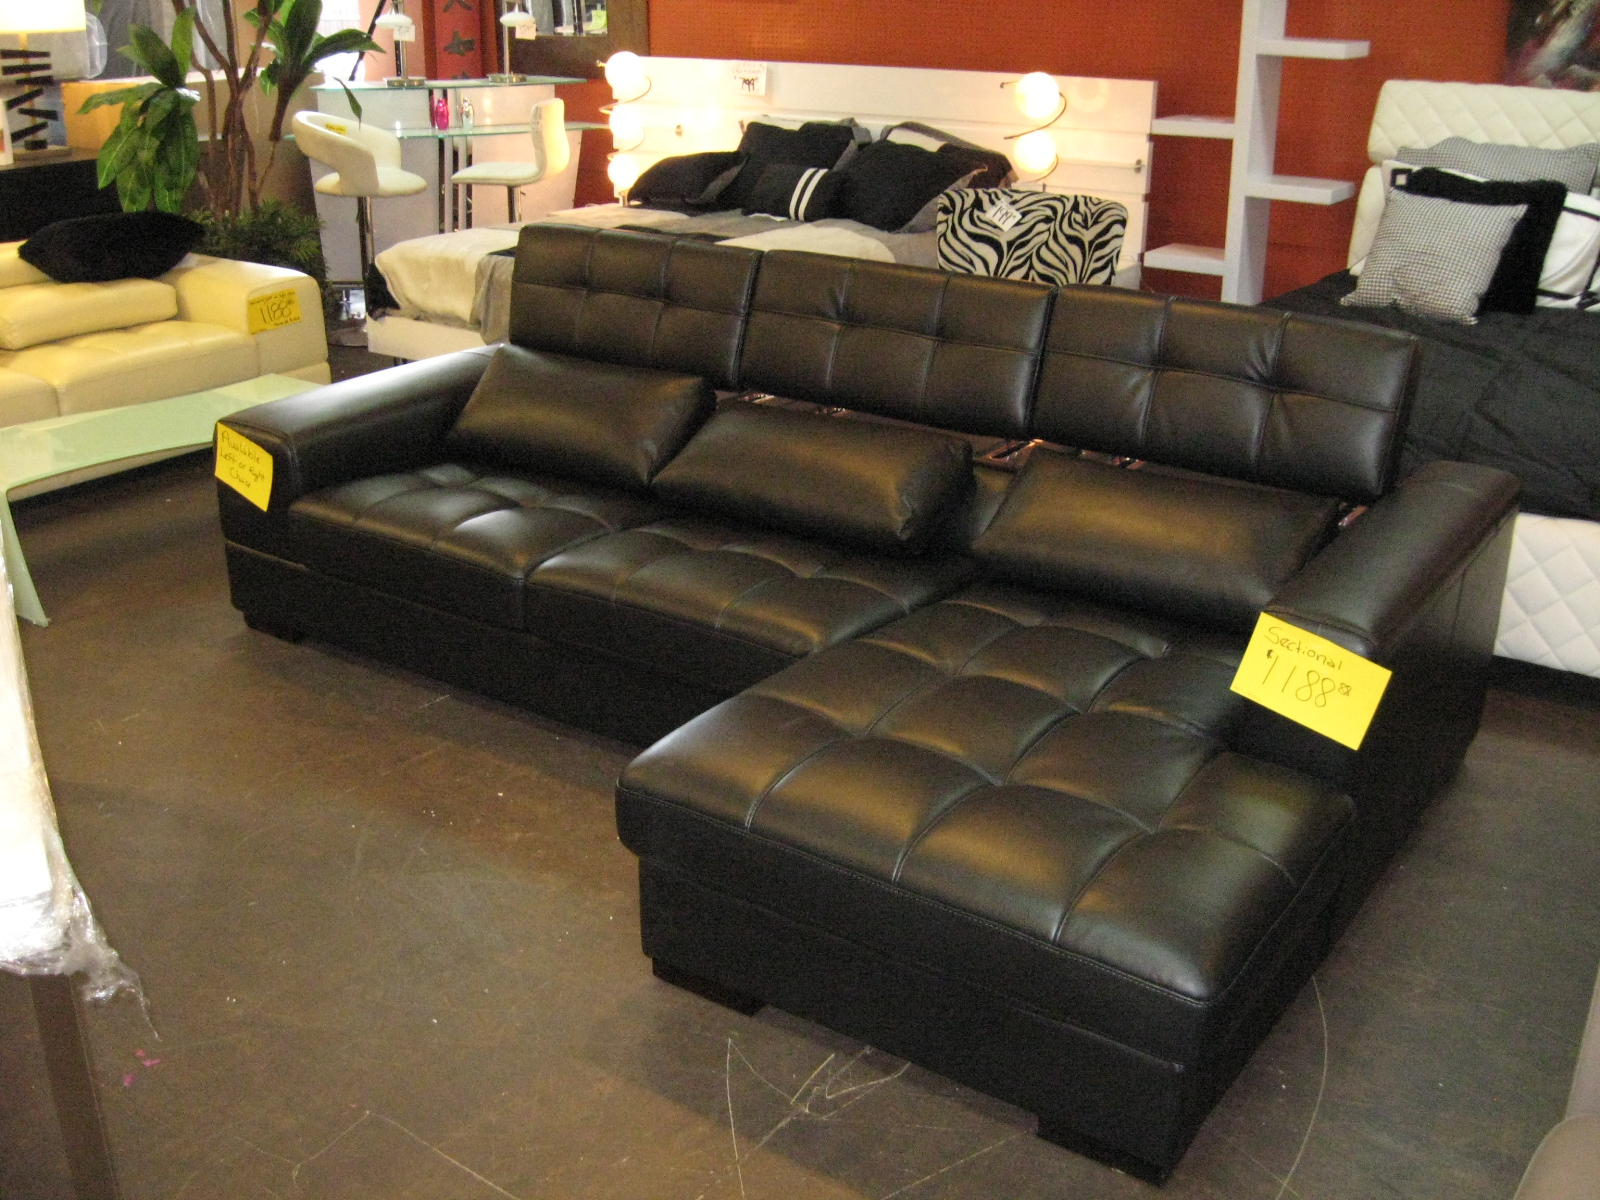 Awesome black leather sectional for elegant living room design with black leather sectional sofa